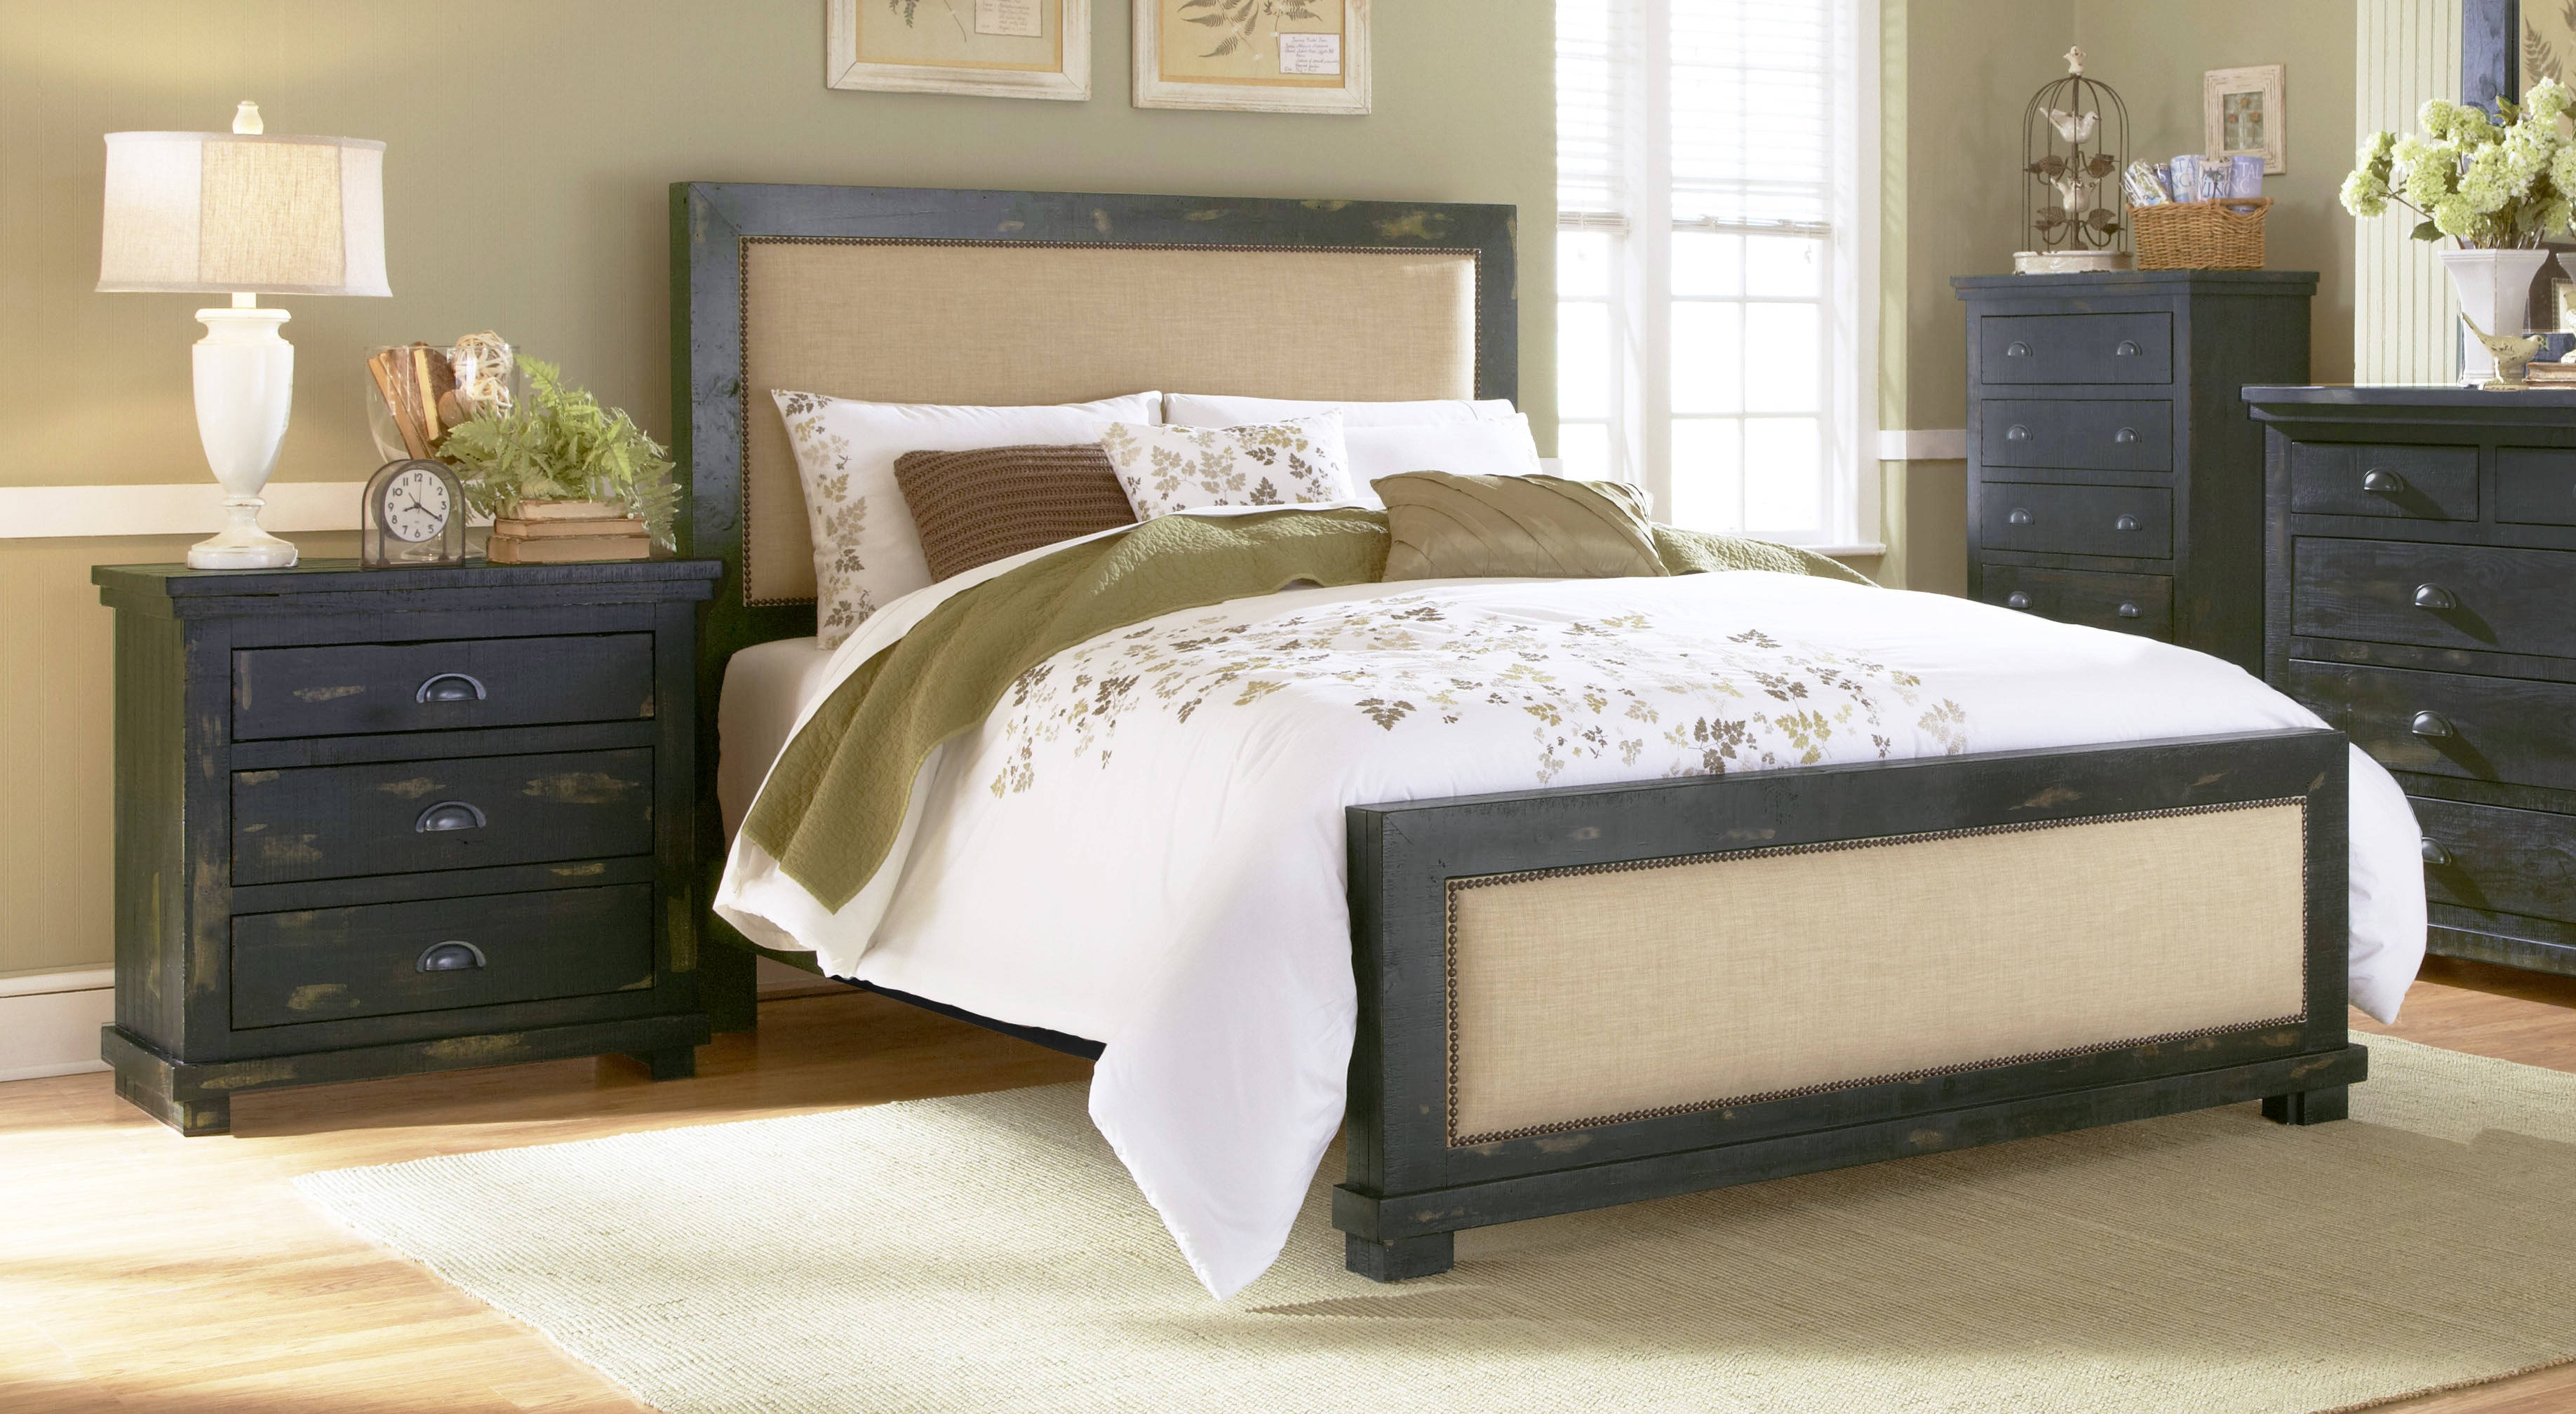 Progressive Furniture Willow Distressed Black 2pc Bedroom Set with King  Upholstered Bed